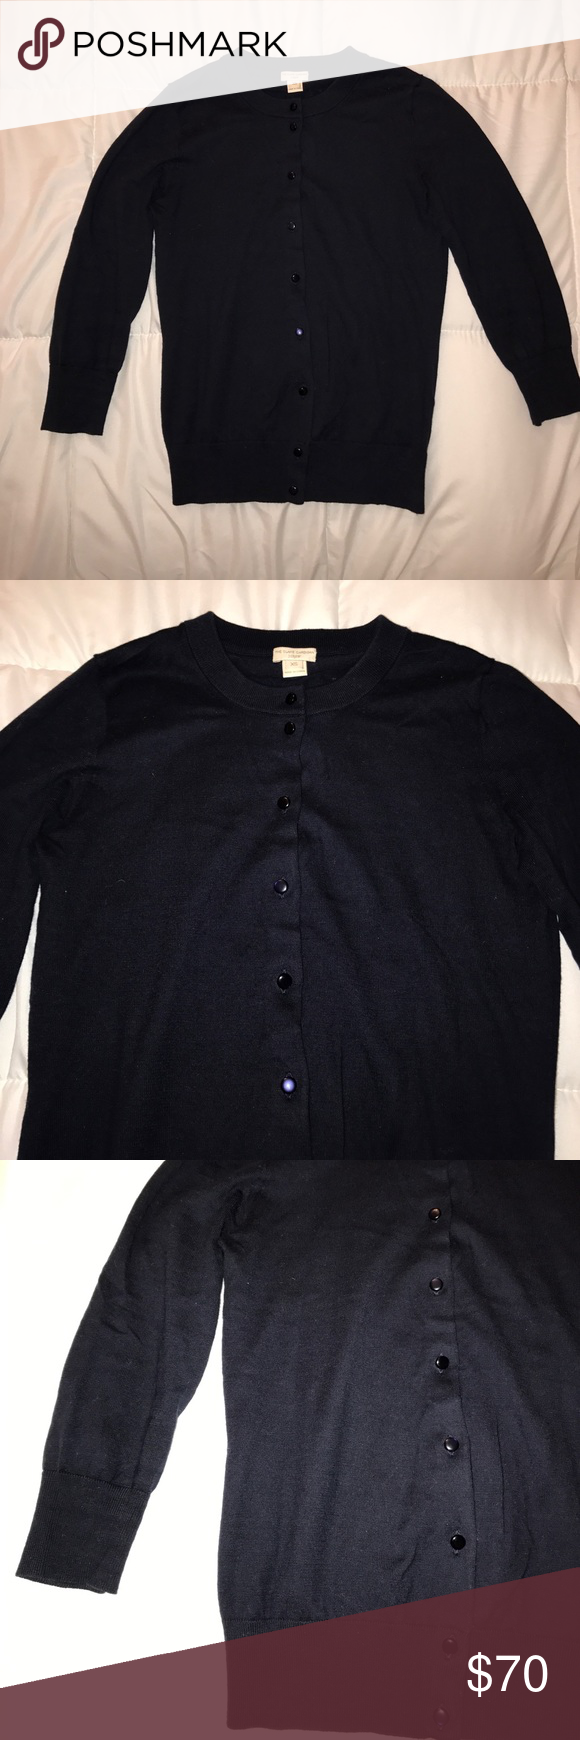 """J.Crew Navy Clare Cardigan XS Navy """"the Clare"""" Cardigan. Crew neck. 3/4 sleeves. Size XS. 100% cotton. Measured across: shoulder to shoulder 12.5in, armpit to armpit 17in, waist 14in, sleeve length 16.5in, length 20in J. Crew Sweaters Cardigans"""